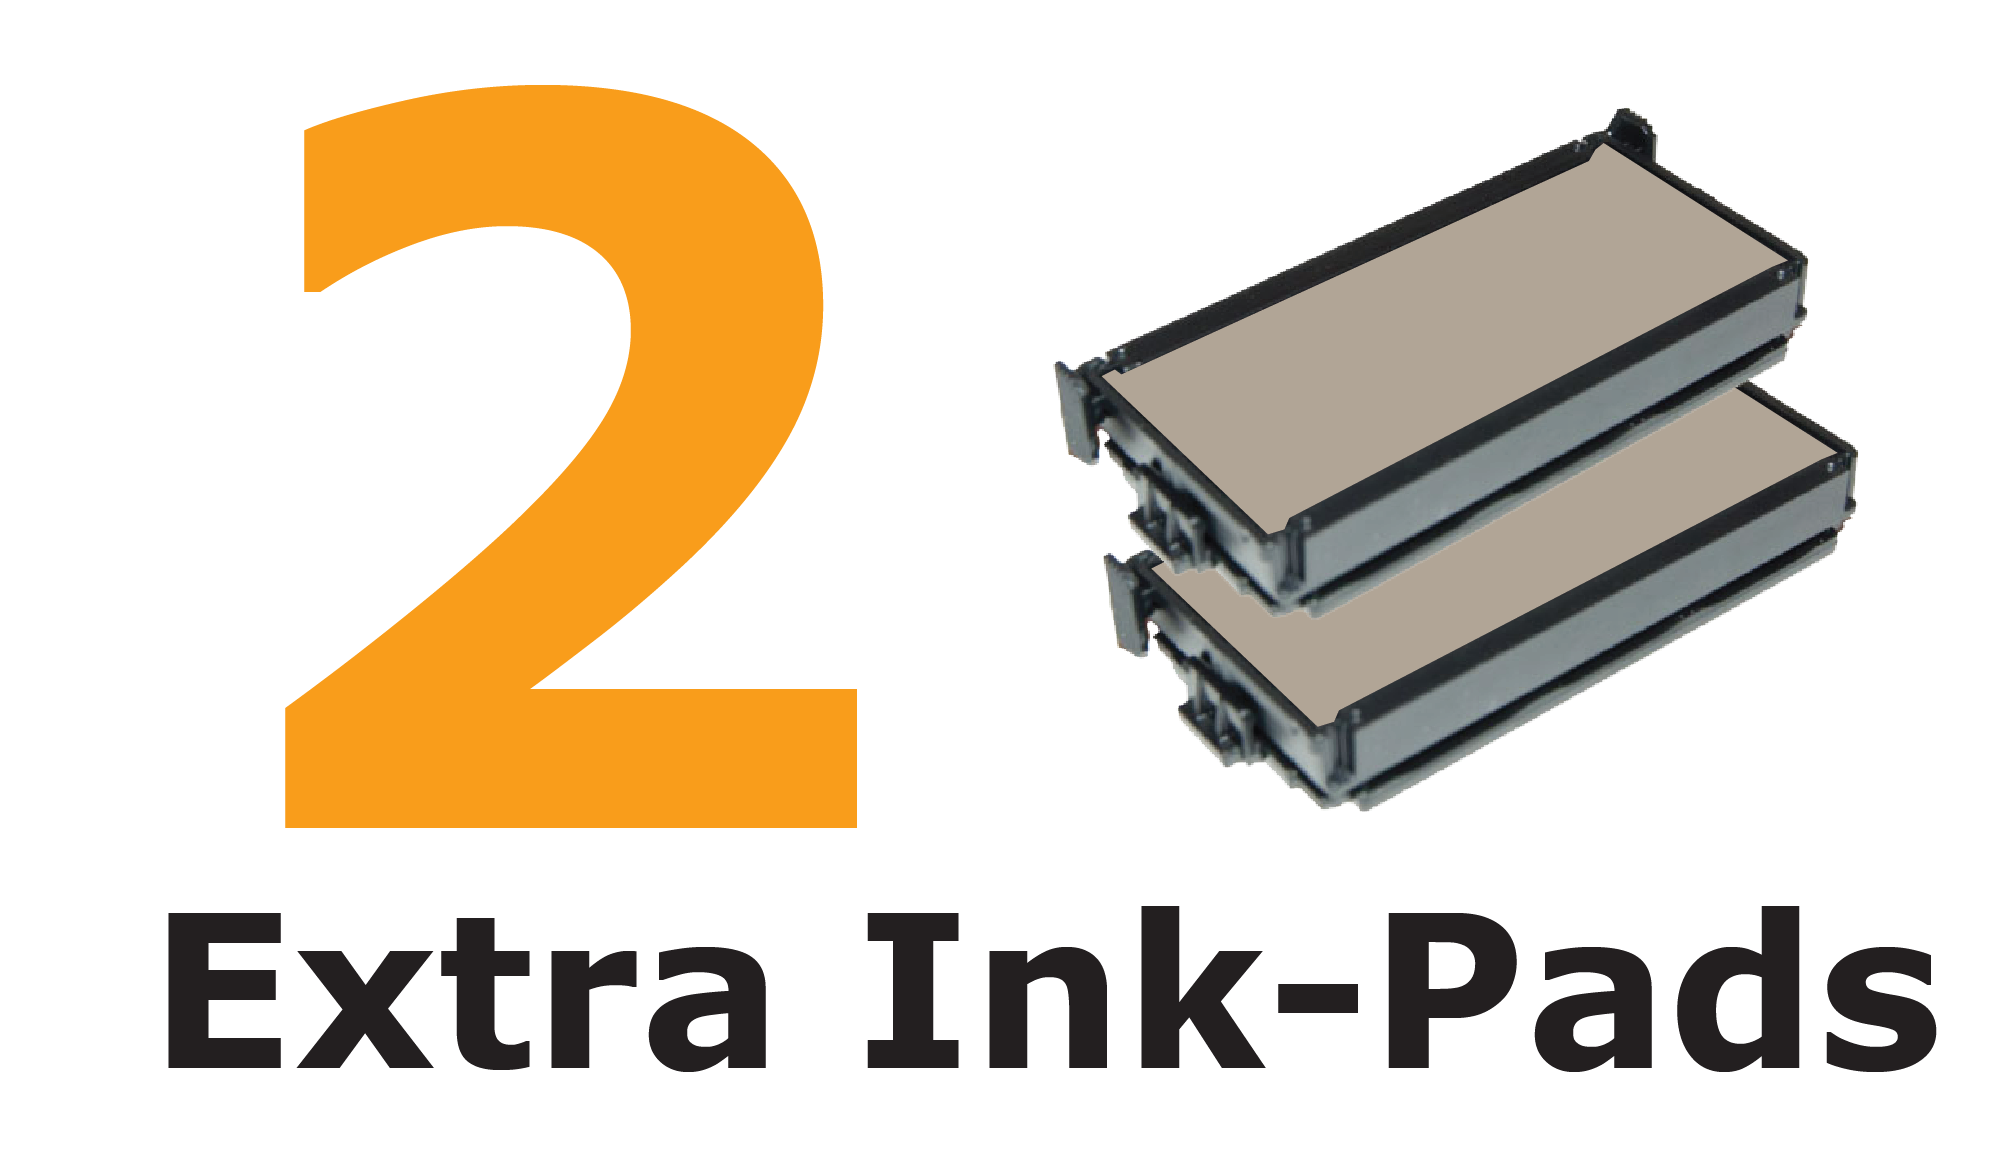 TWO extra ink-pads